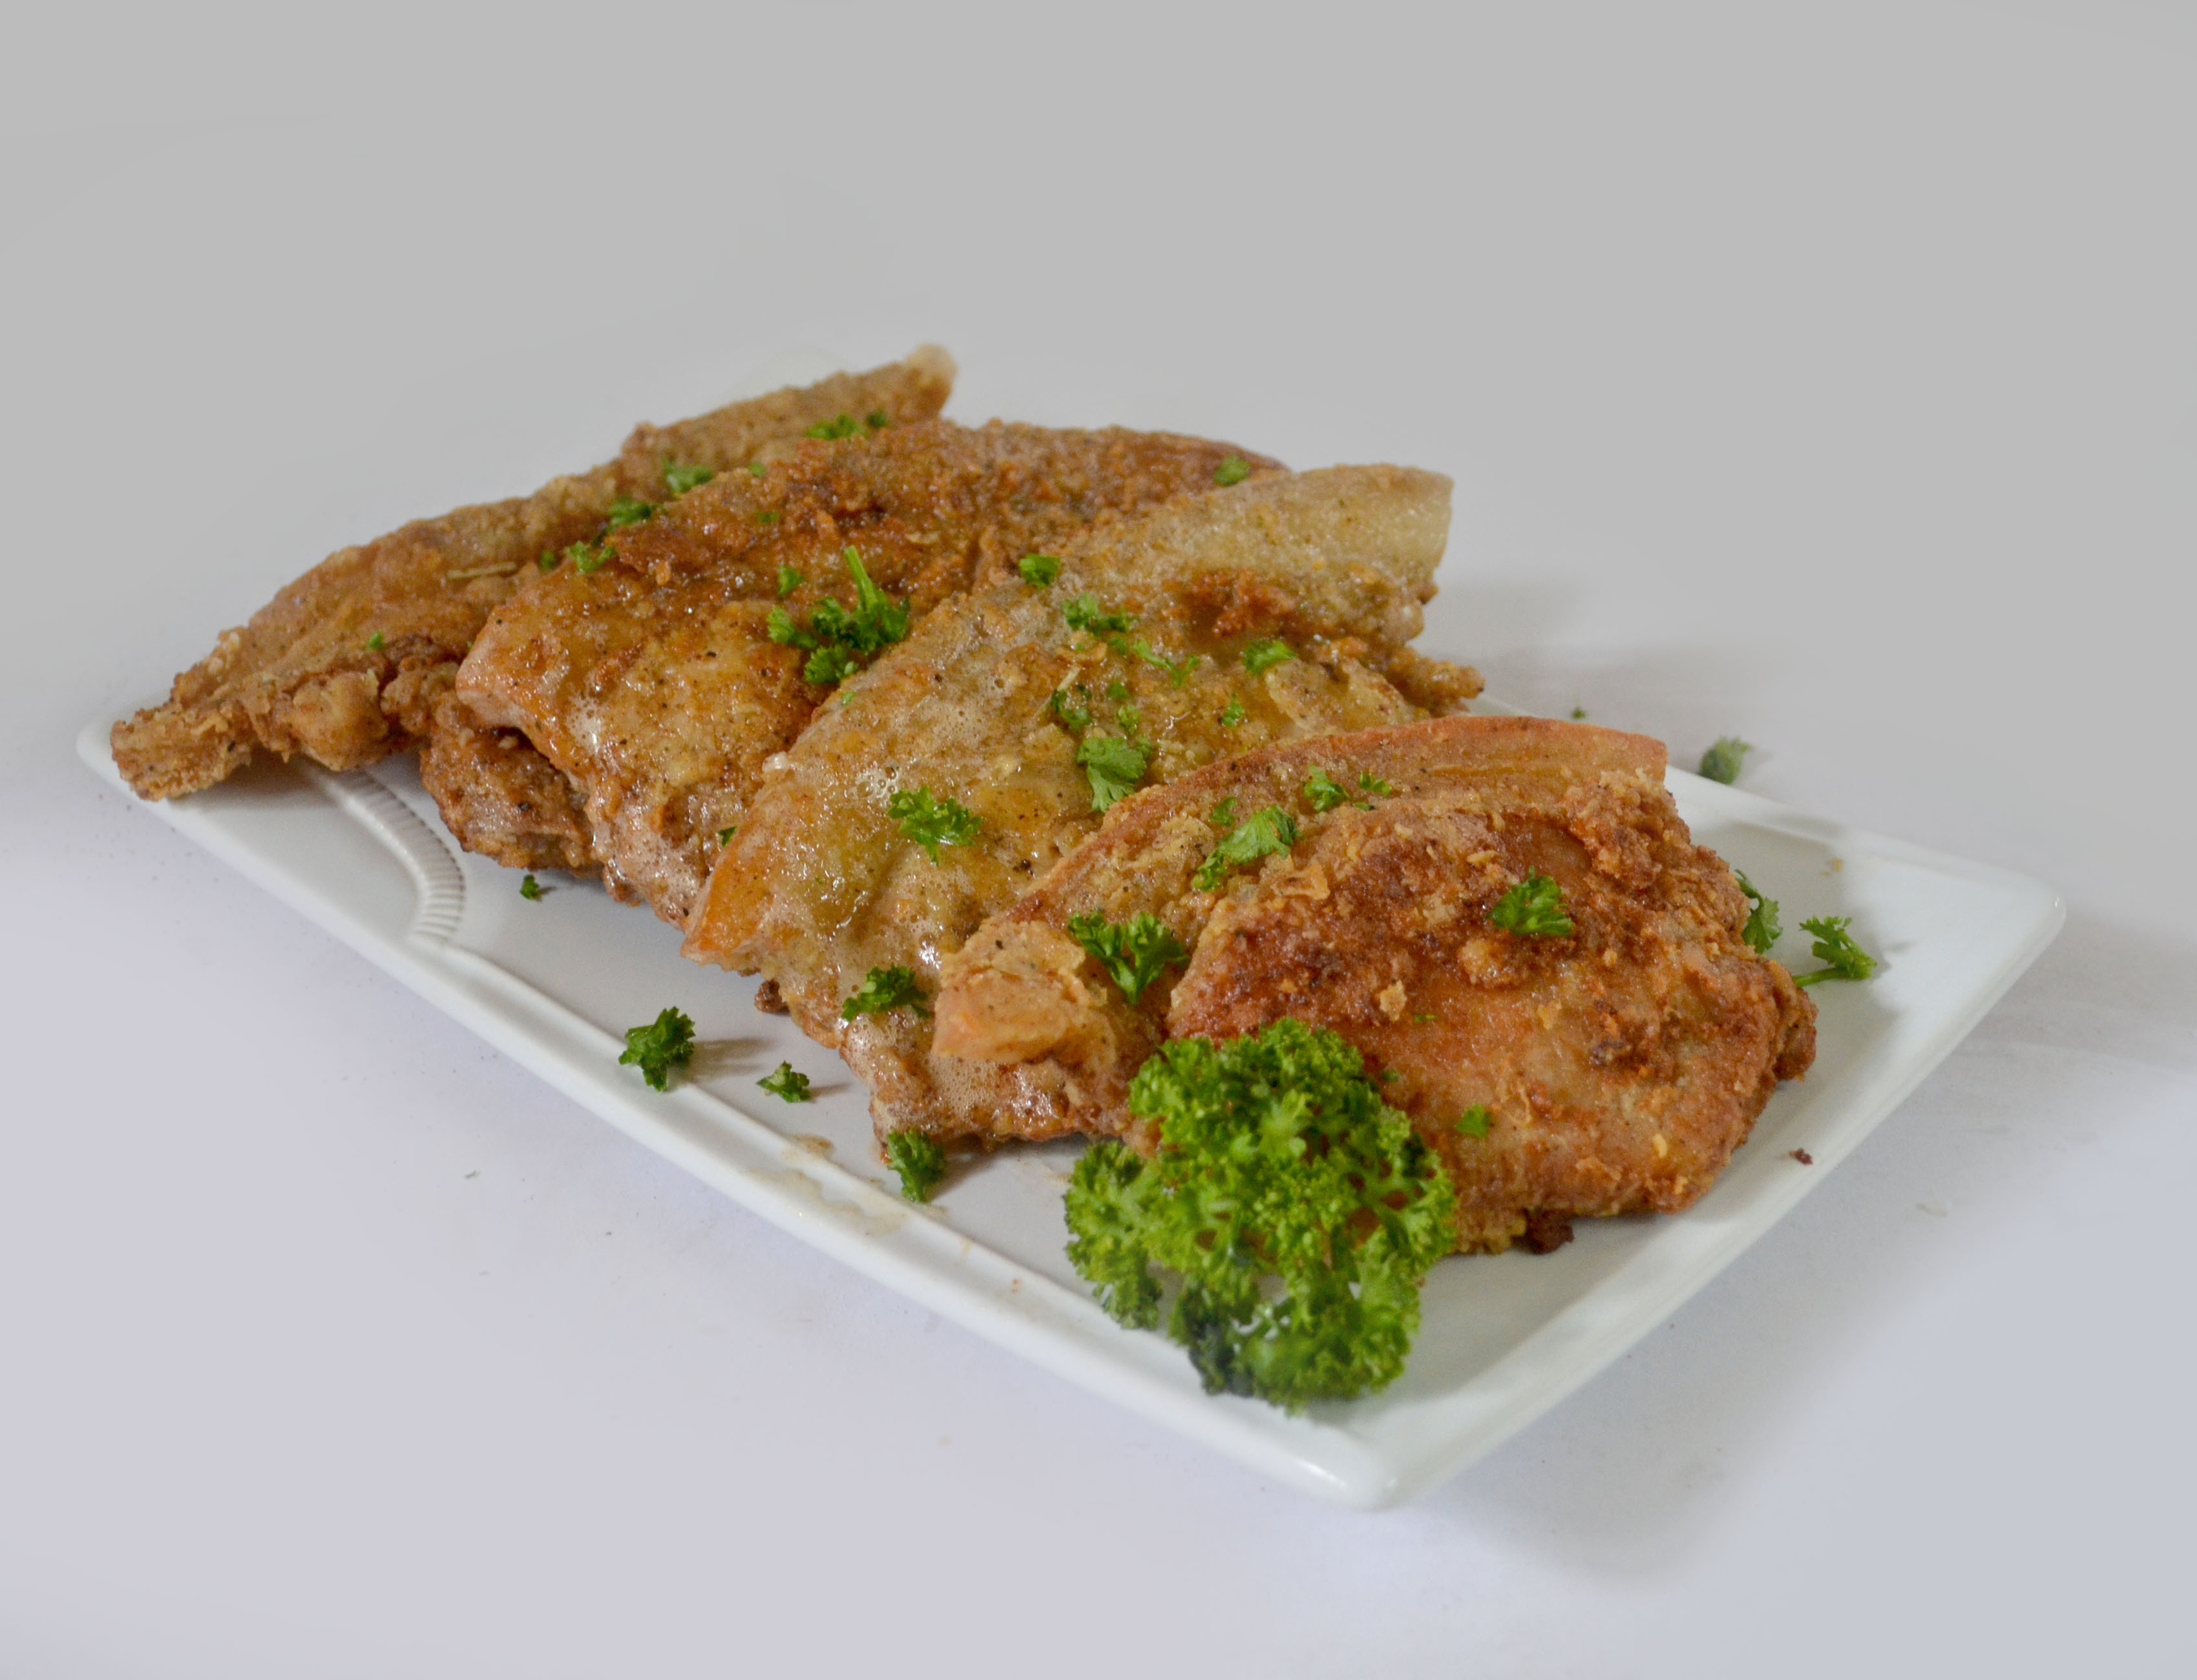 How To Fry Pork Chops On The Stove  4 Ways to Cook Pork Chops on the Stove wikiHow